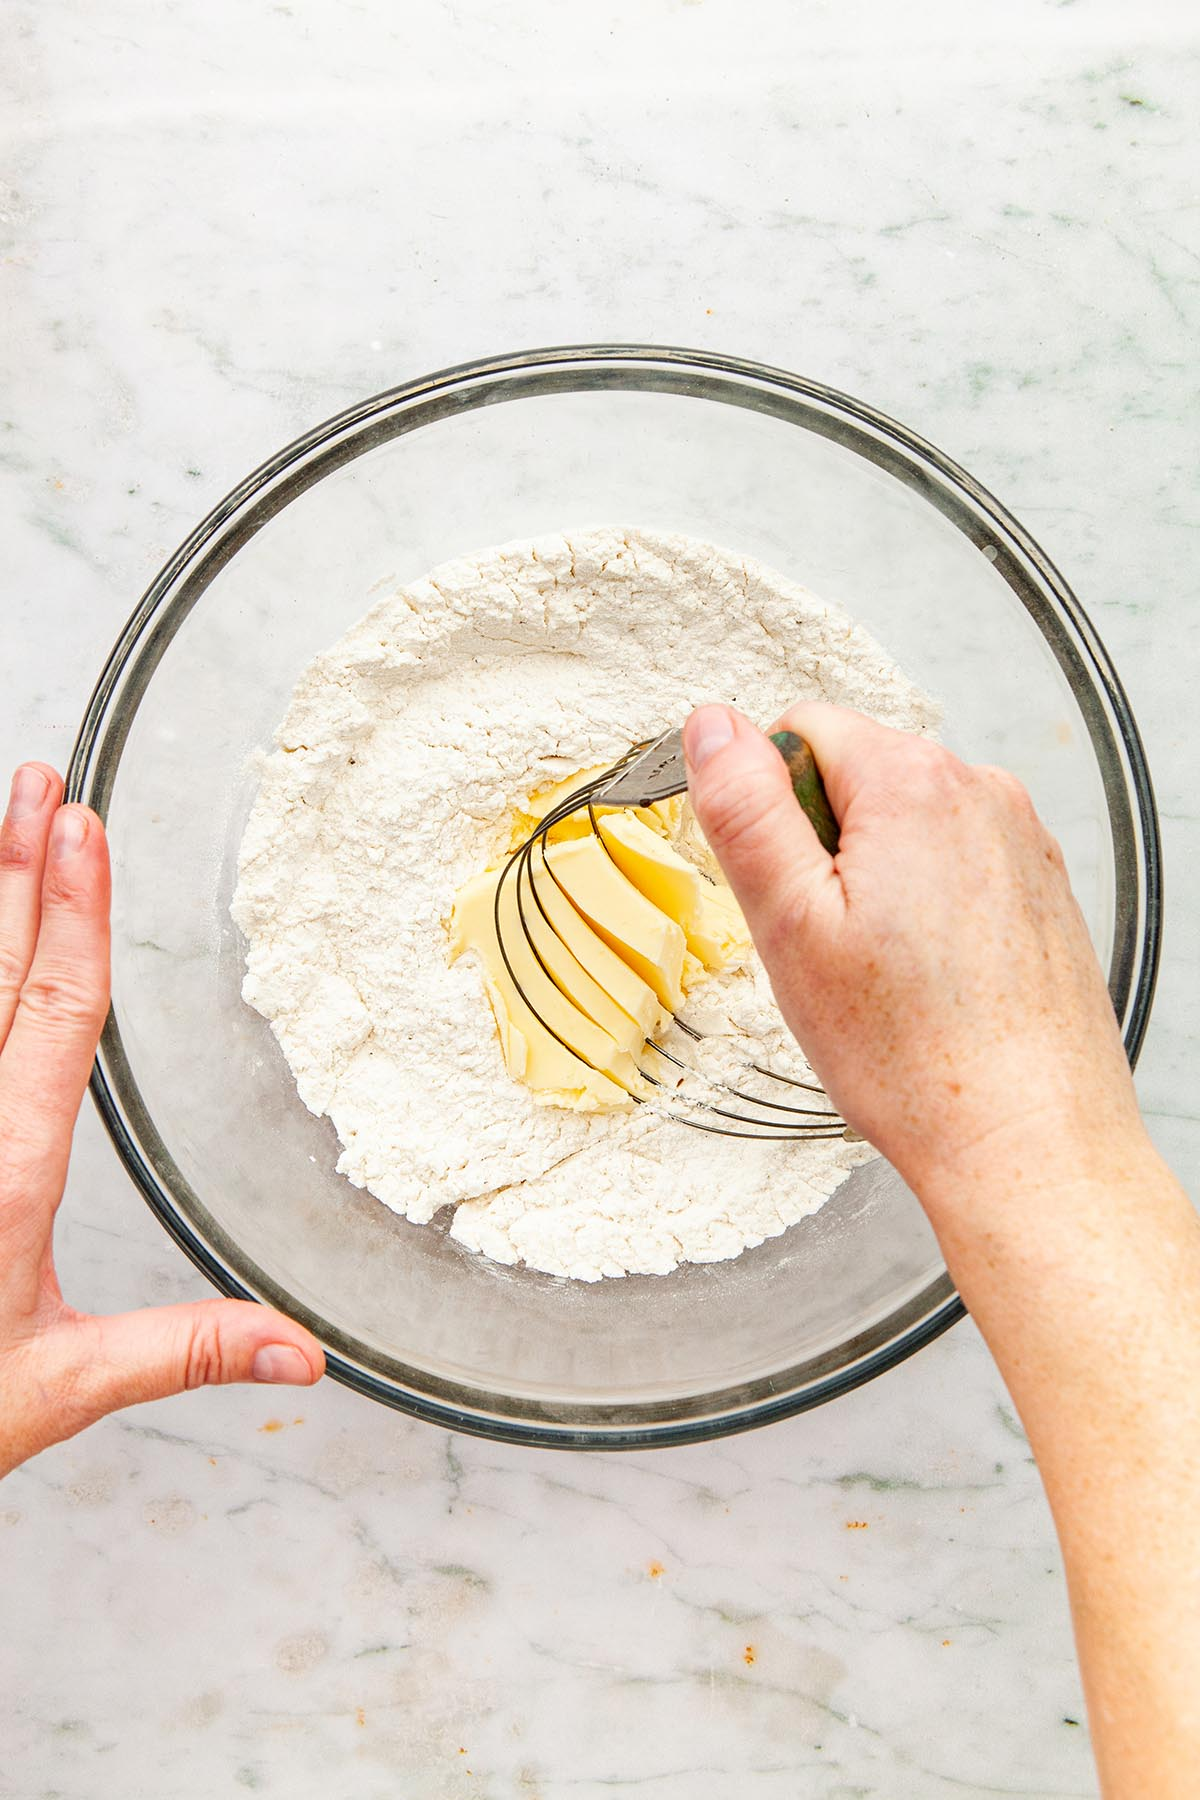 Hands using a pastry blender to cut butter into flour.